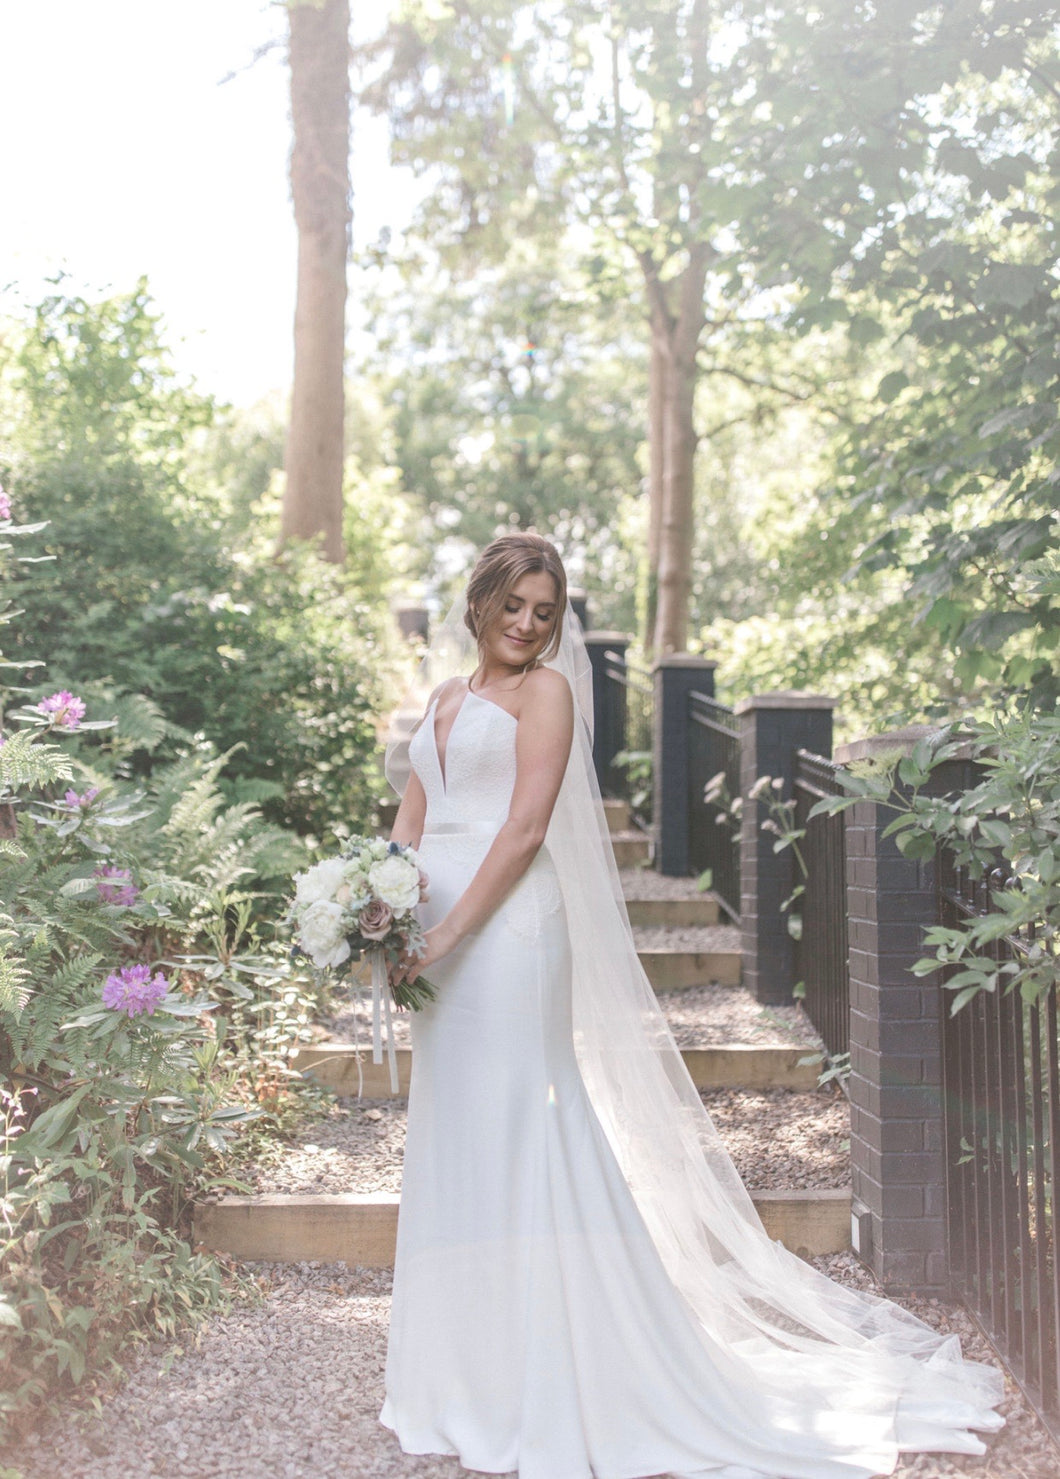 Sharp Lines, Delicate Lace, and a Wonderful Woodland Background!